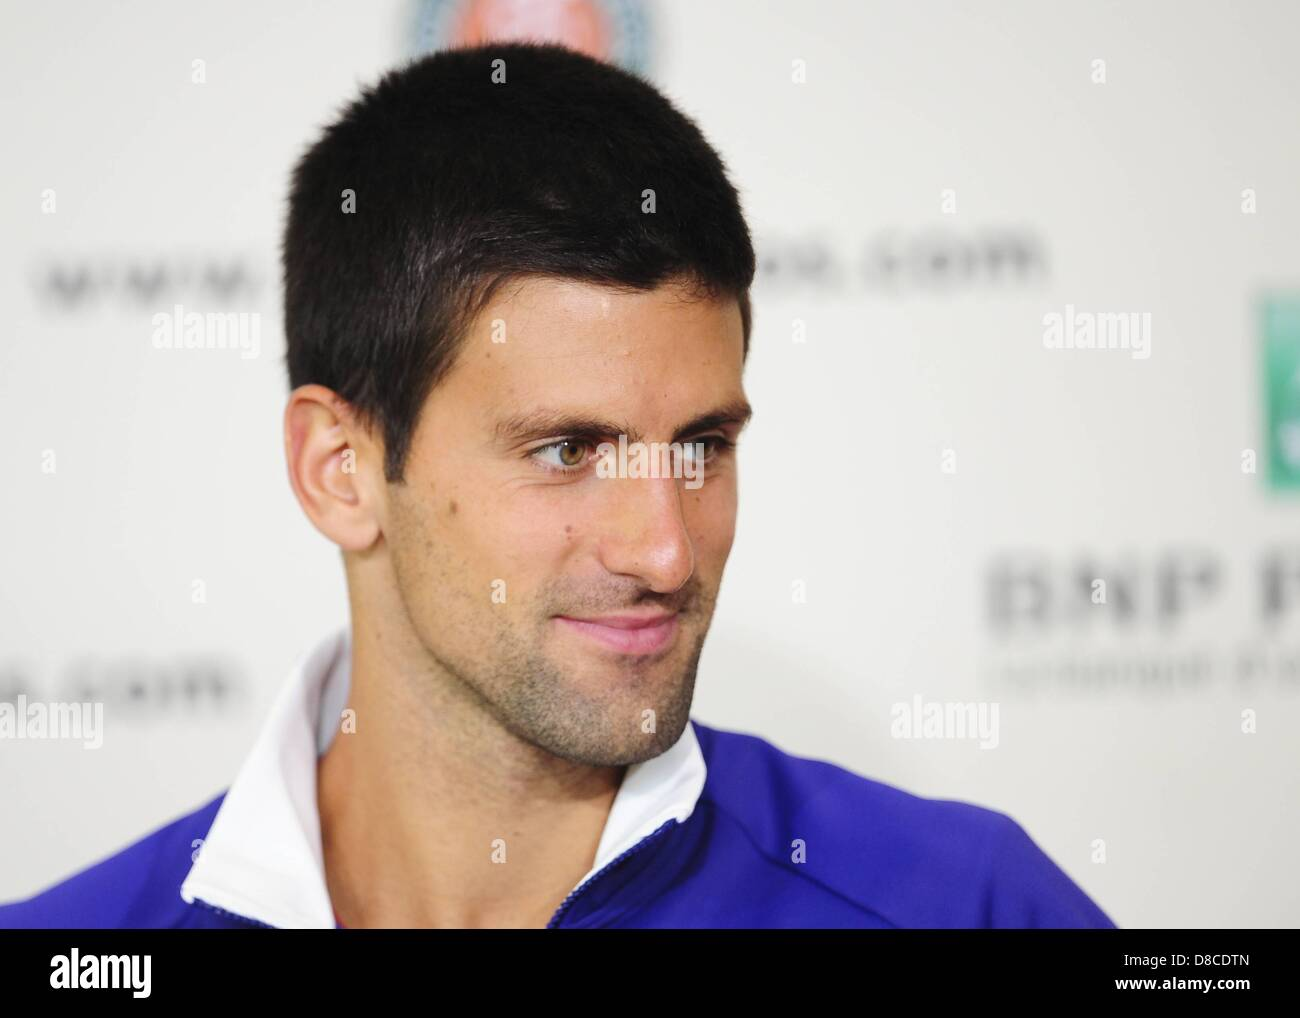 24 05 2013 Paris France.  Novak Djokovic Srb Roland Garros tennis open press announcement and draw. - Stock Image